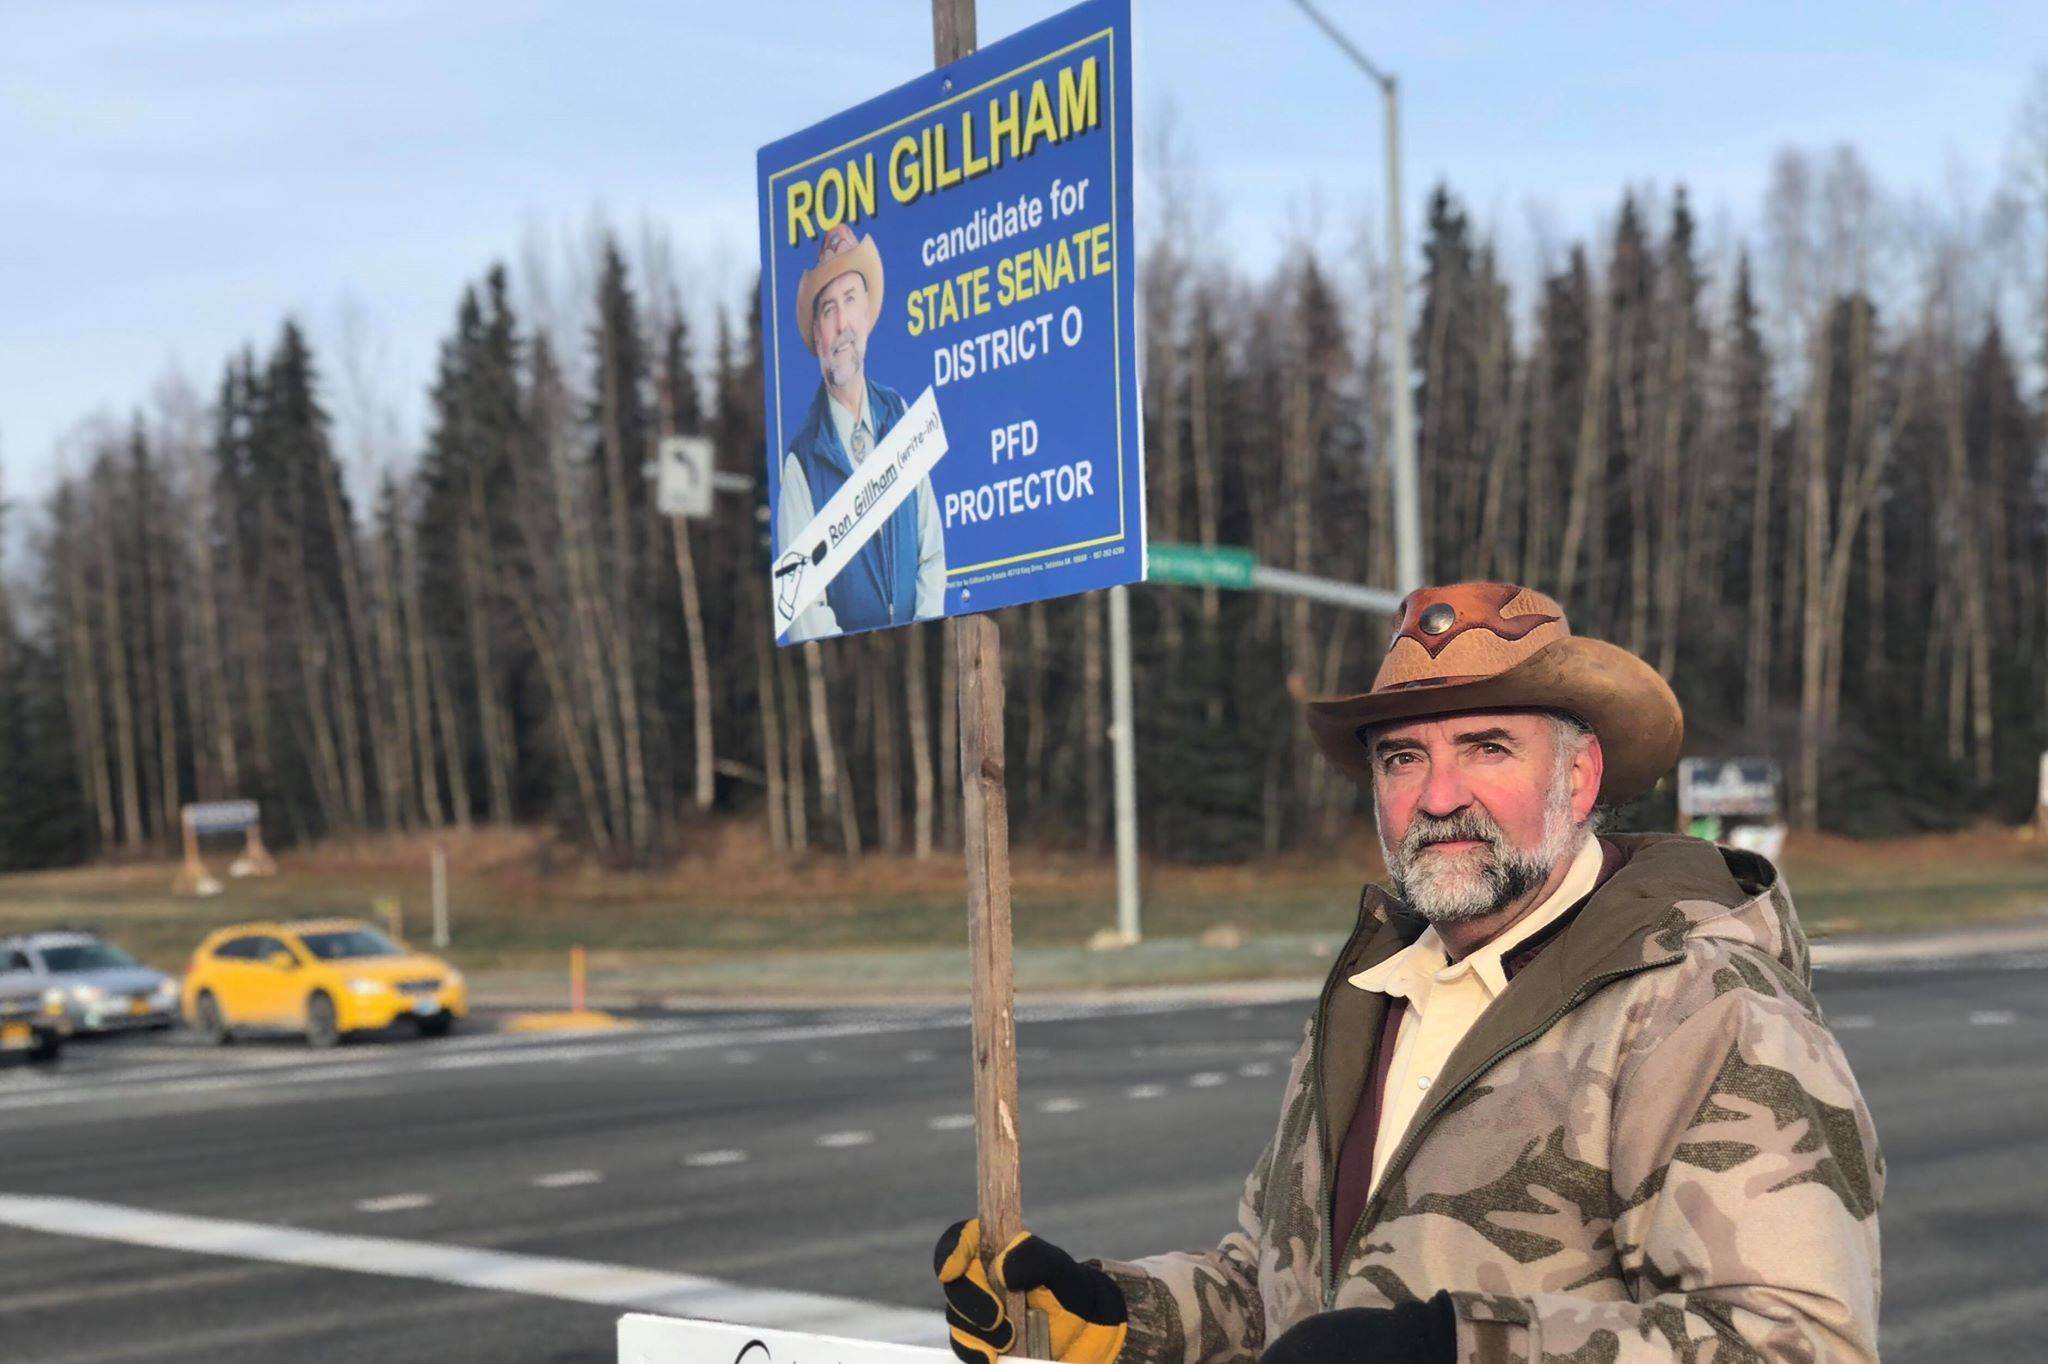 District O State Senate candidate Ron Gilliam holds a sign at the intersection of the Sterling and Kenai Spur Highways on Tuesday, Nov. 6, 2018, in Soldotna, Alaska. (Photo by Victoria Petersen/Peninsula Clarion)